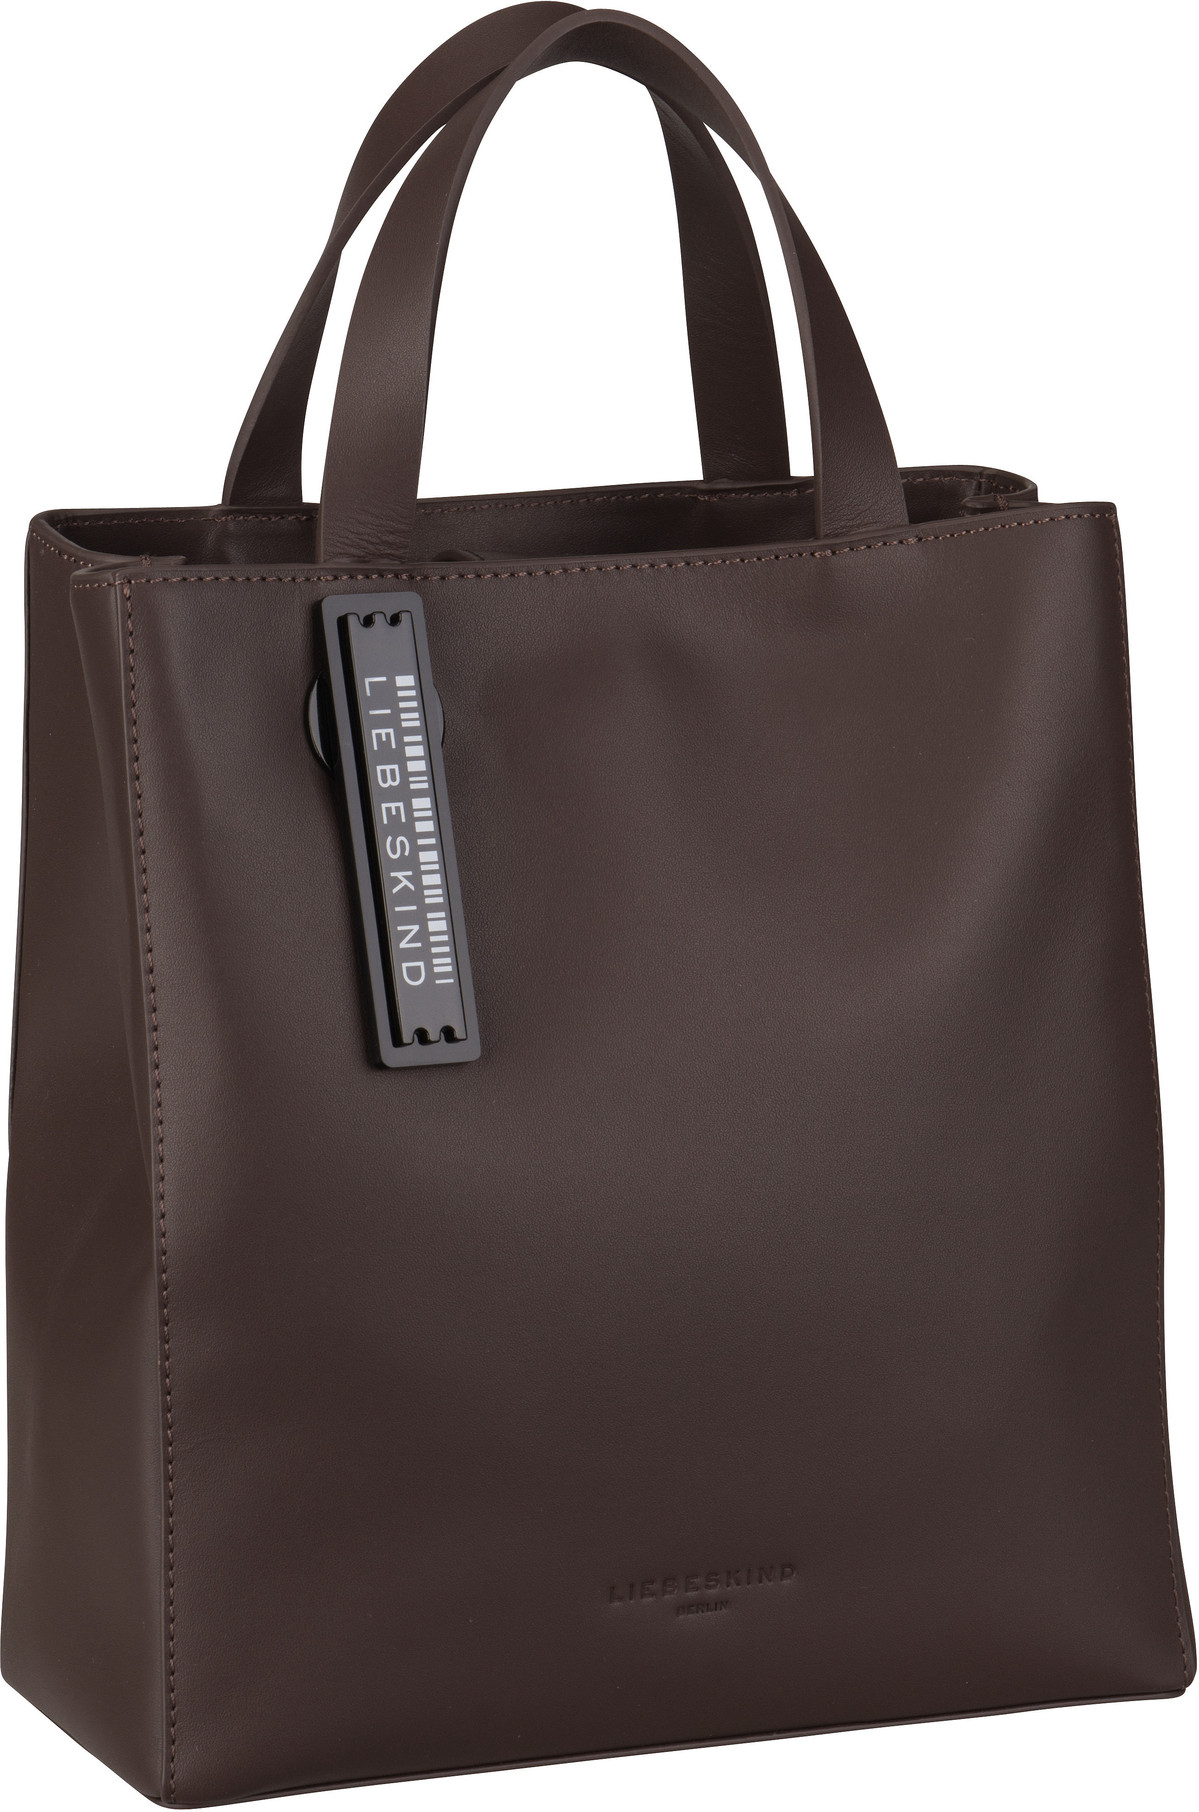 Berlin Handtasche Paper Bag Tote S Dark Brown